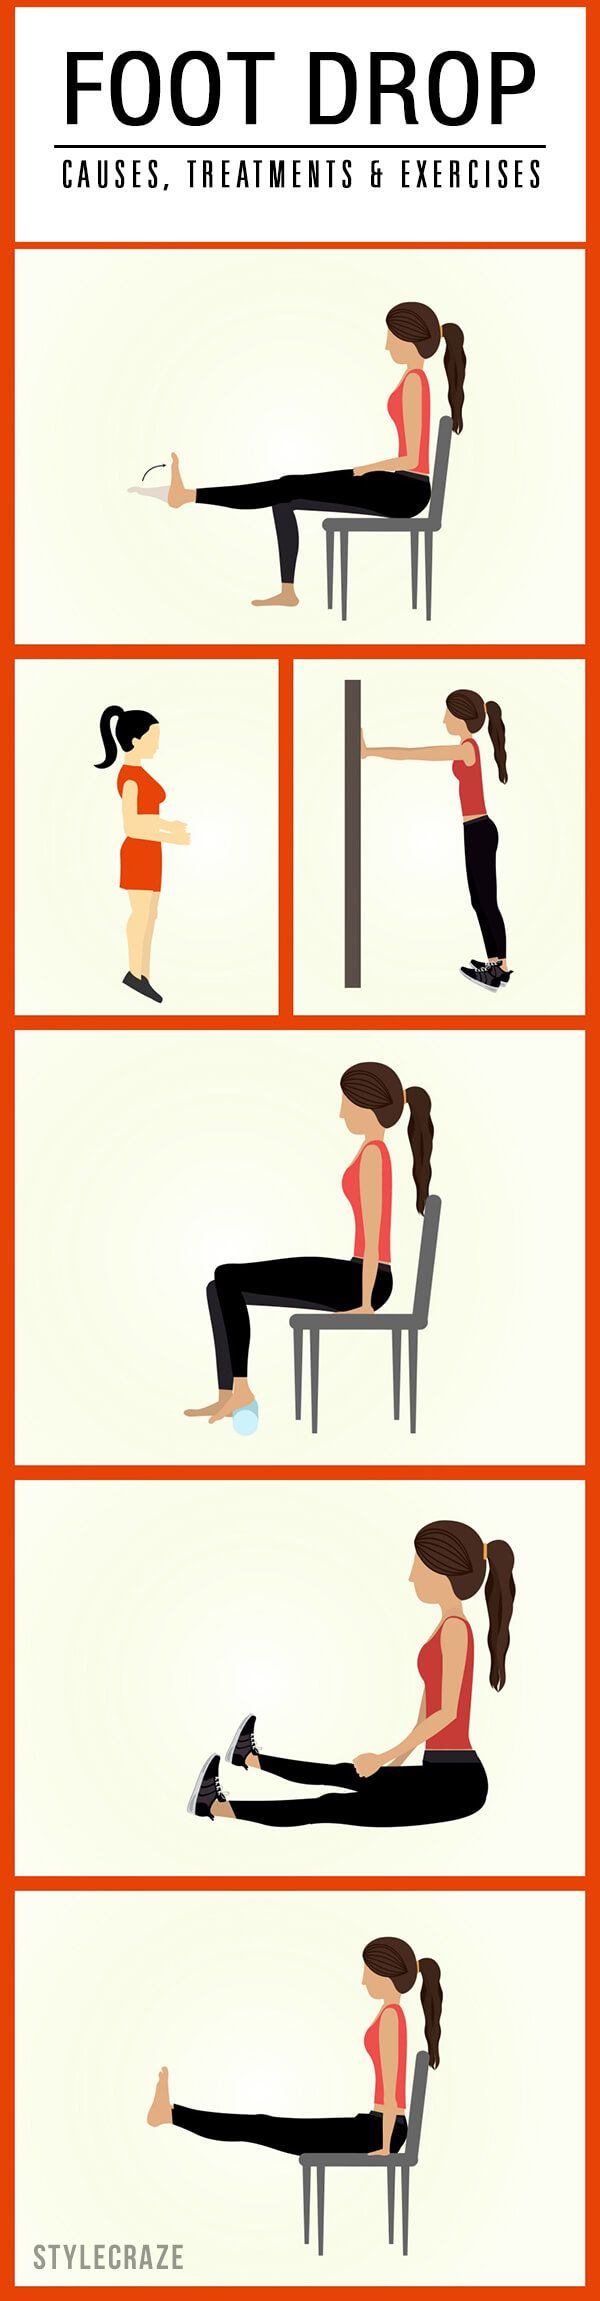 Foot Drop- Causes, Treatments And Exercises